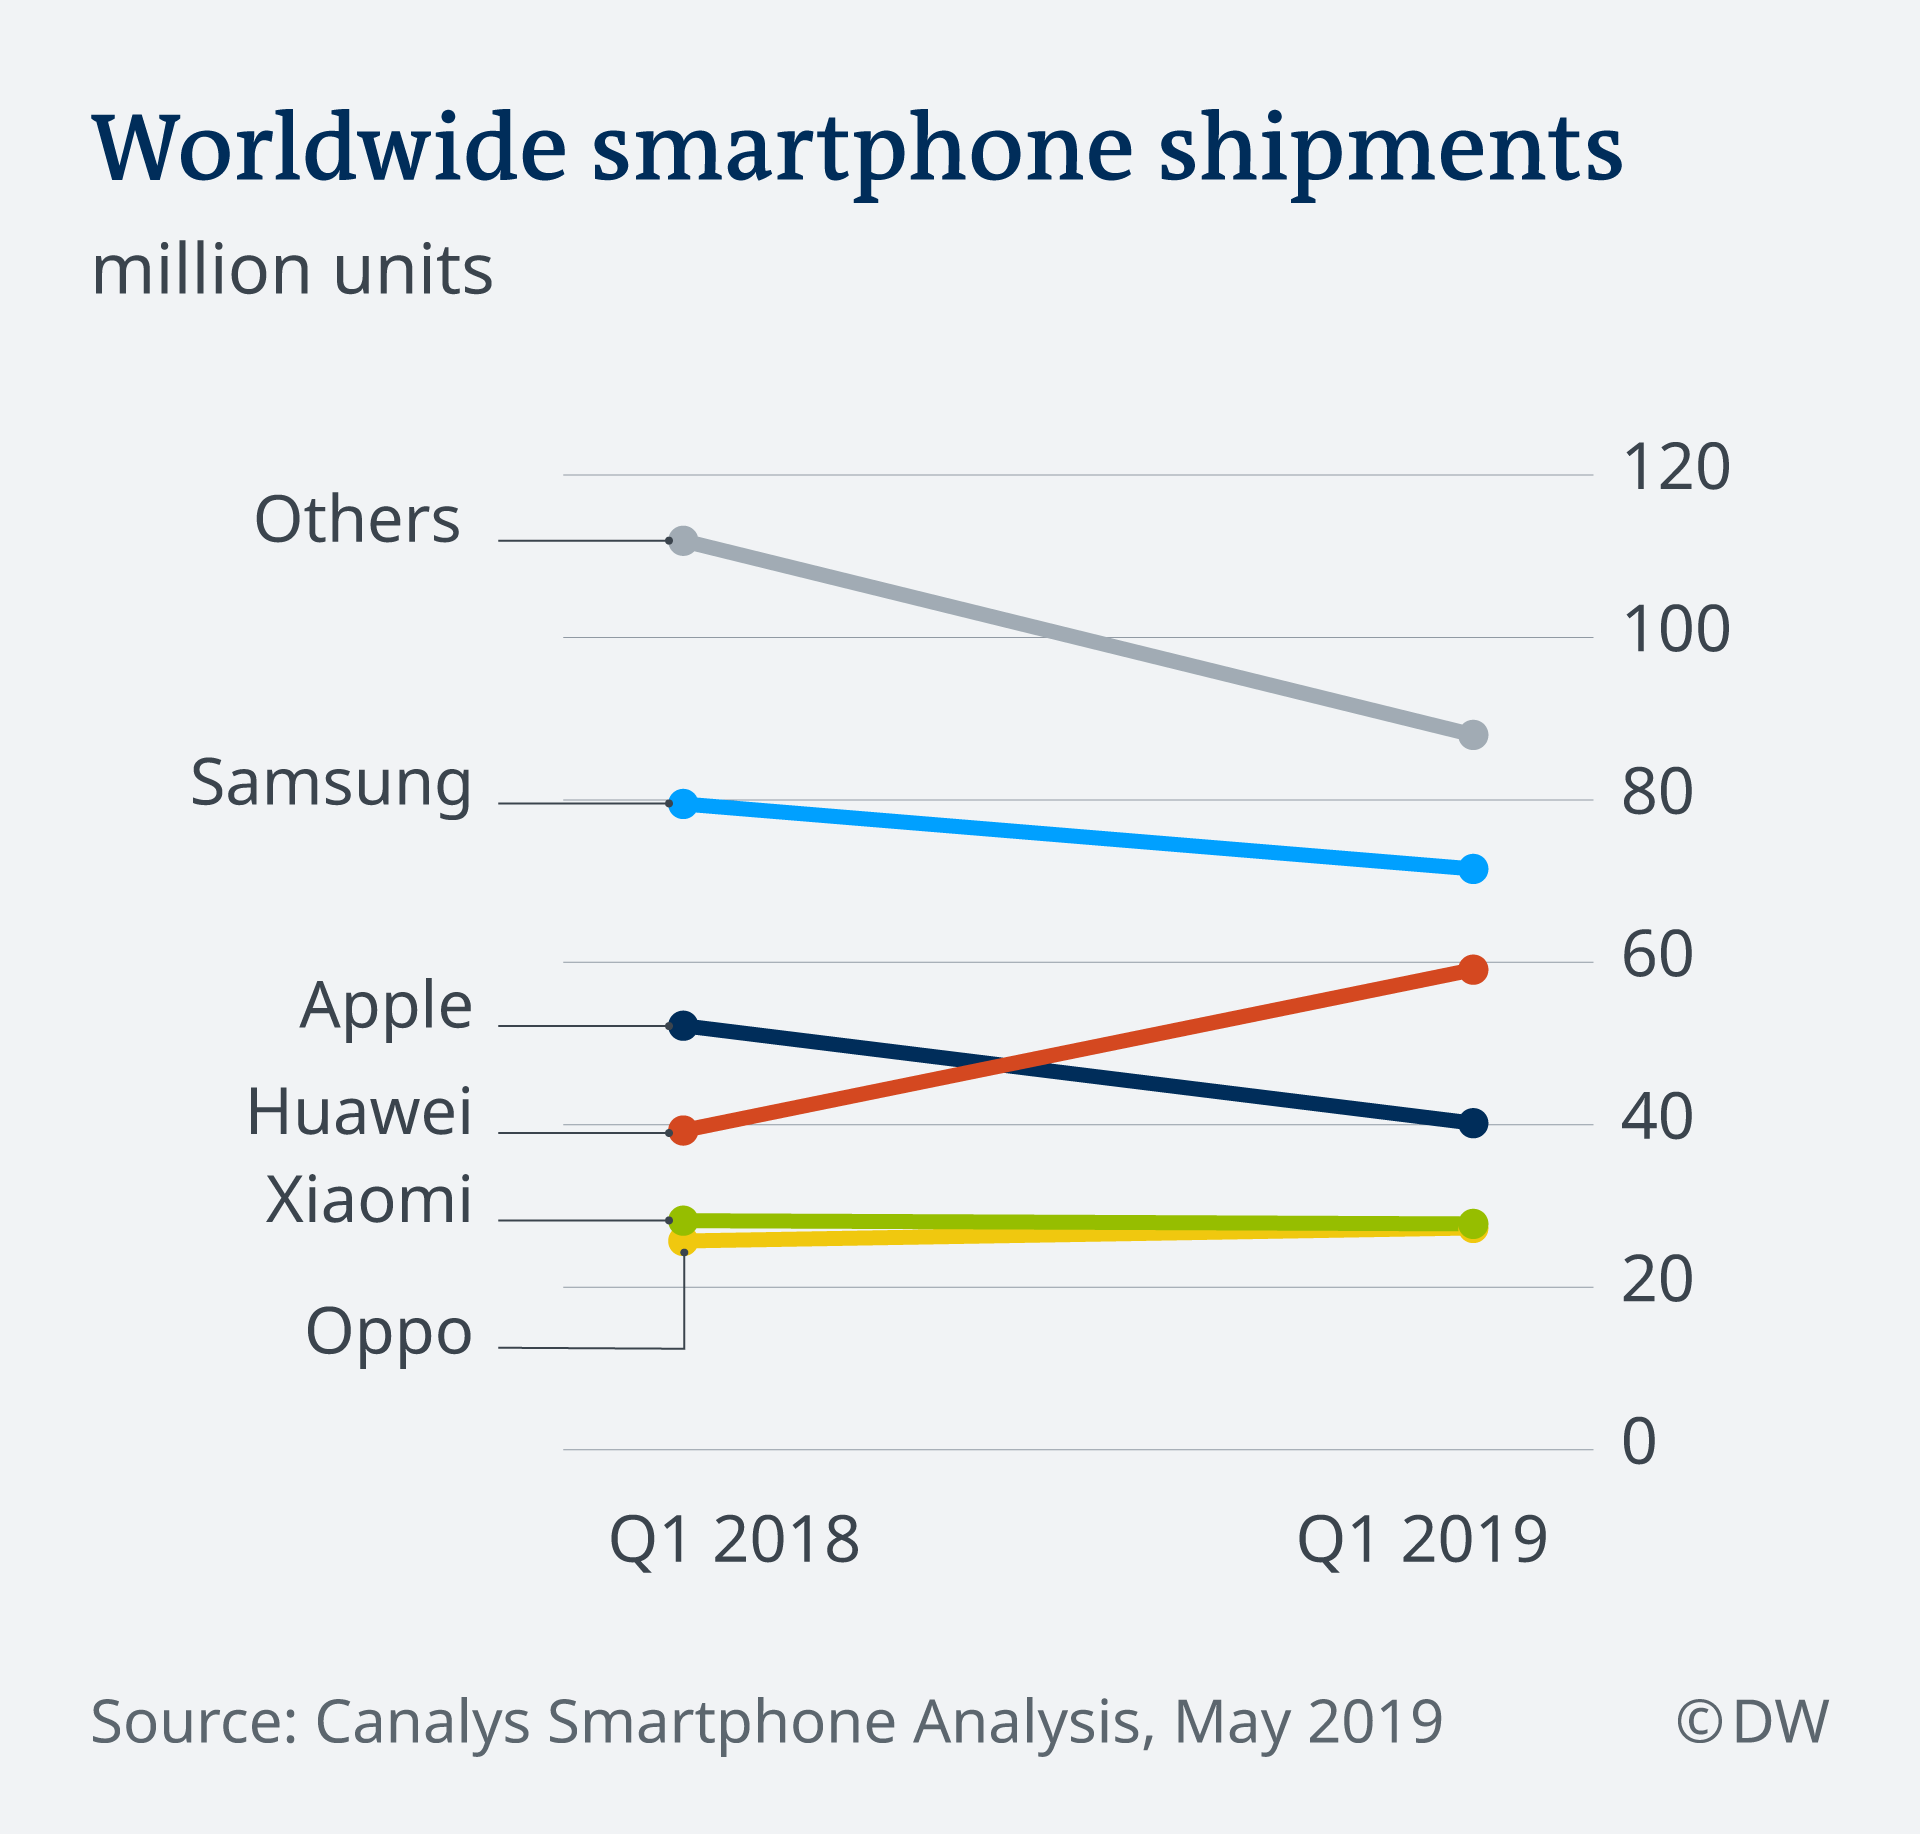 An infographic showing global smartphone shipments